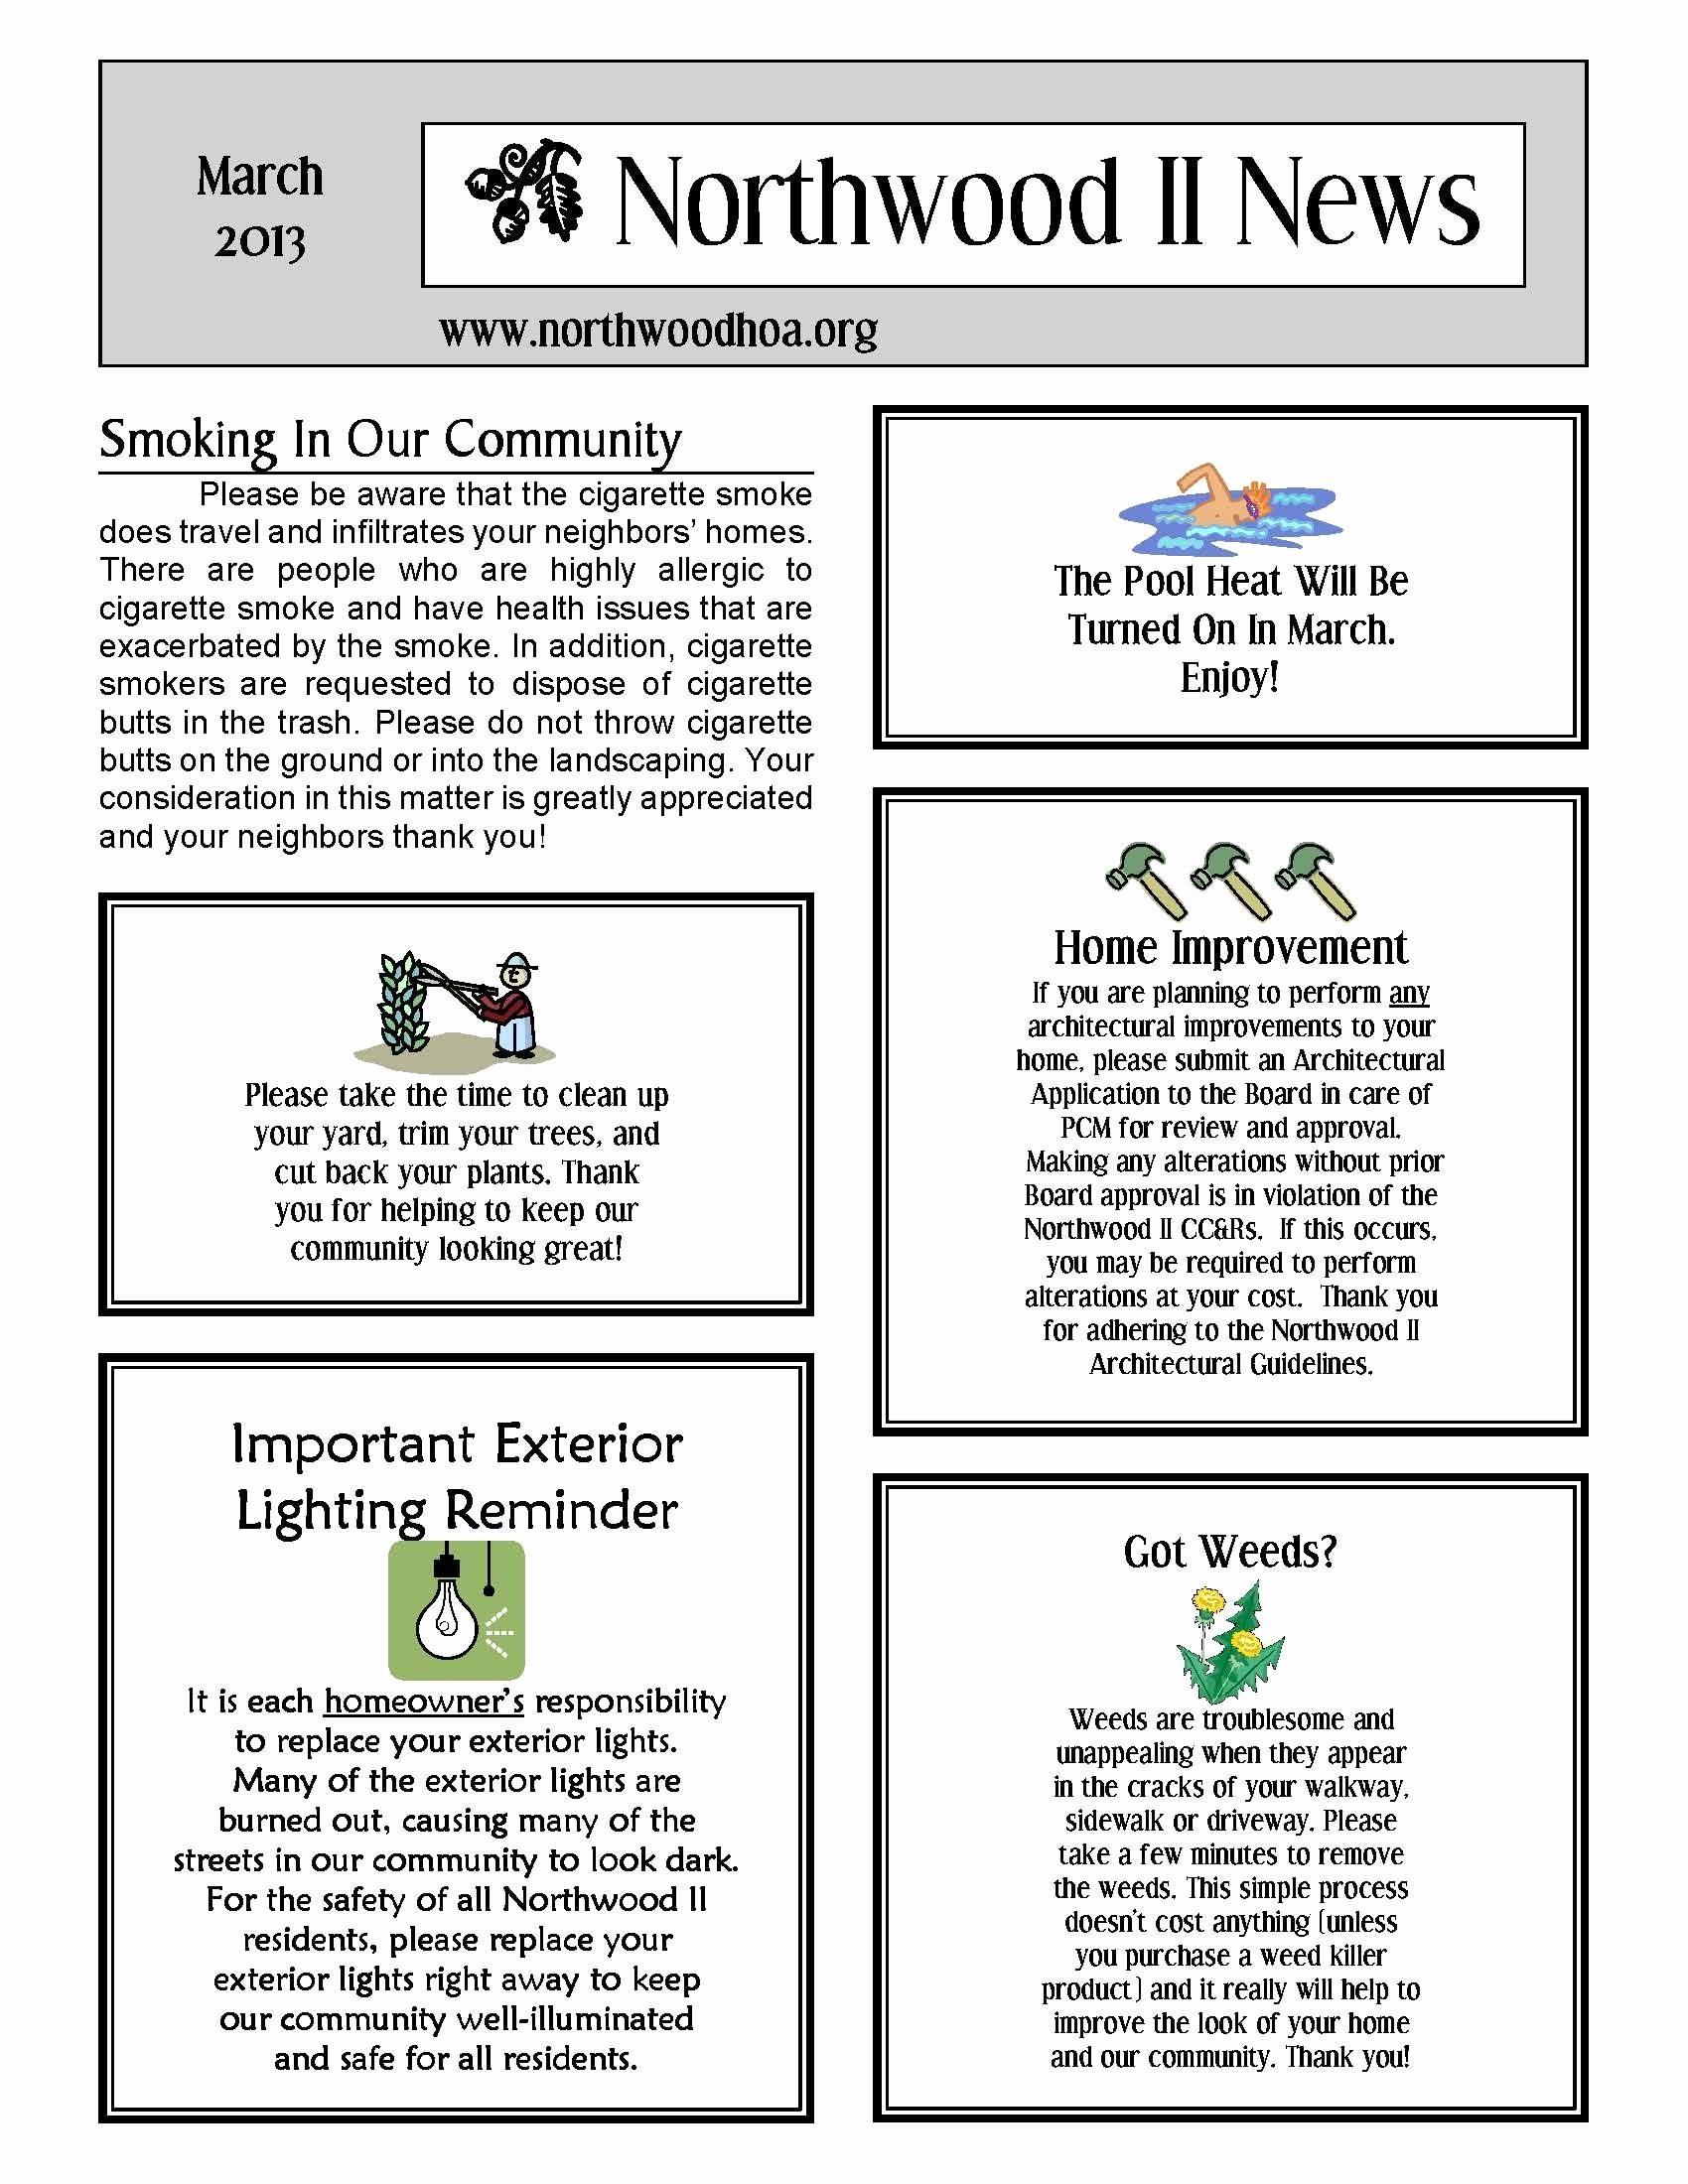 Homeowners association Newsletter Template Awesome March 2013 – northwood Ii Nwii Hoa Munity association